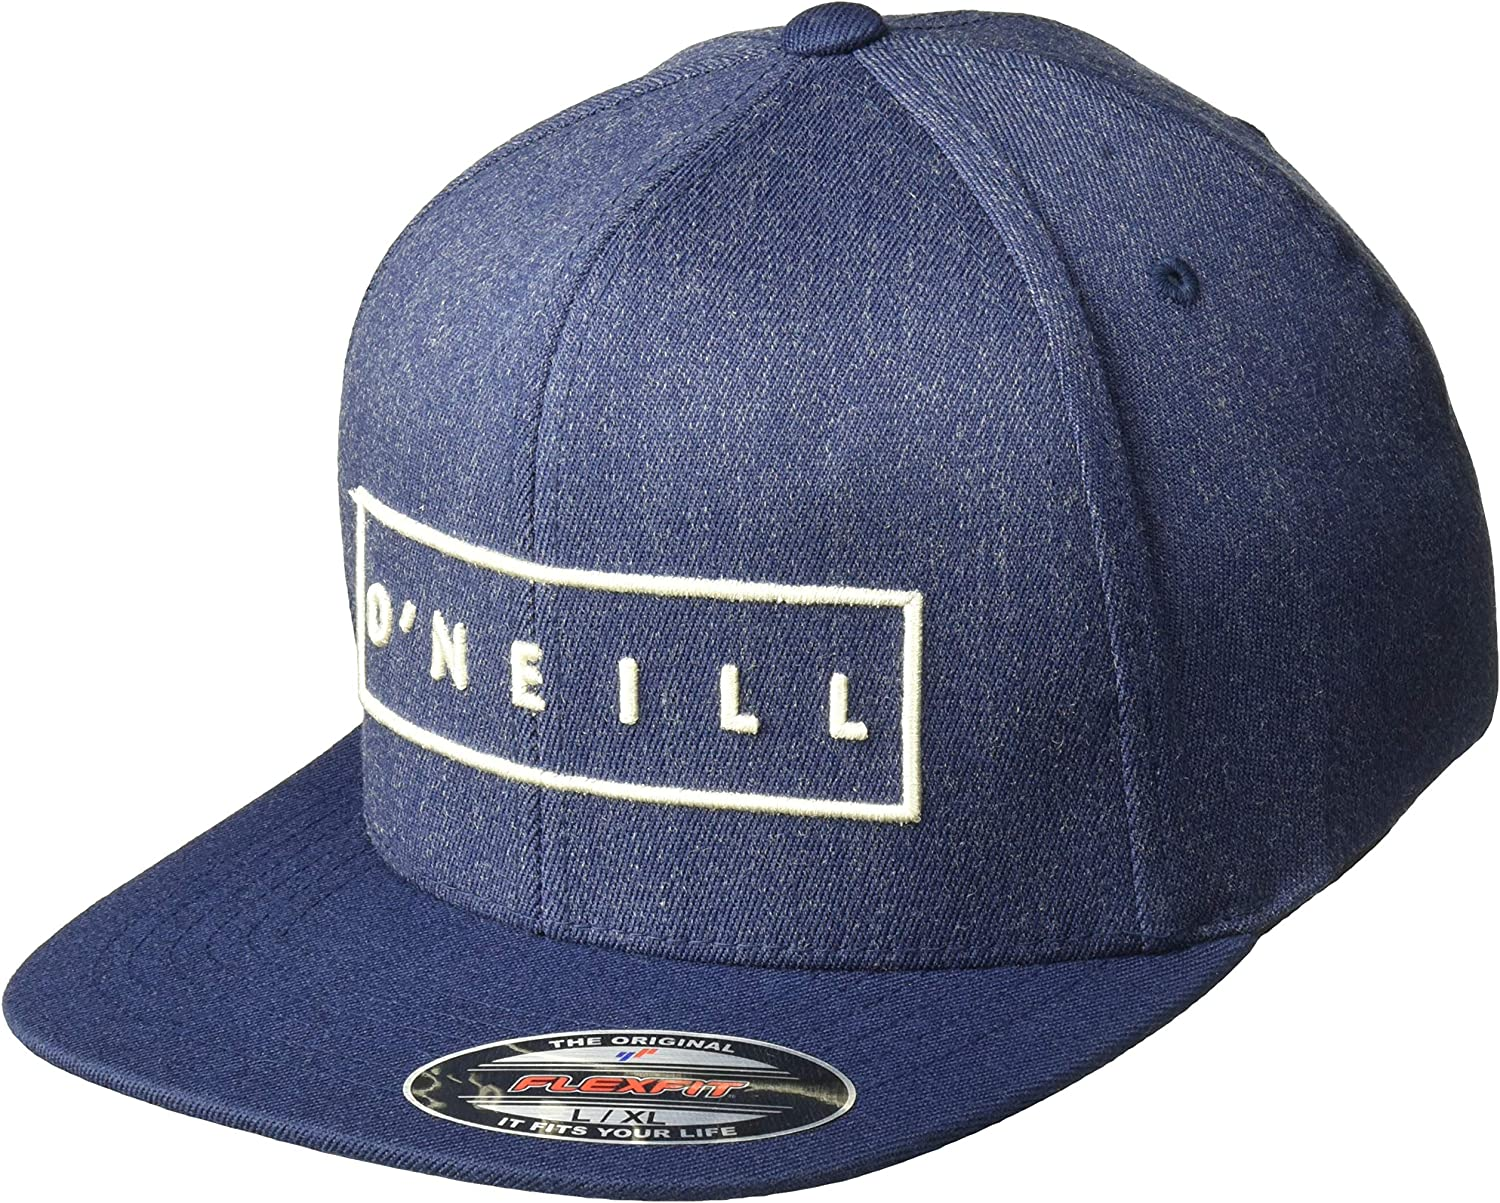 O'NEILL Men's Hot Box Stretch Fit Hat